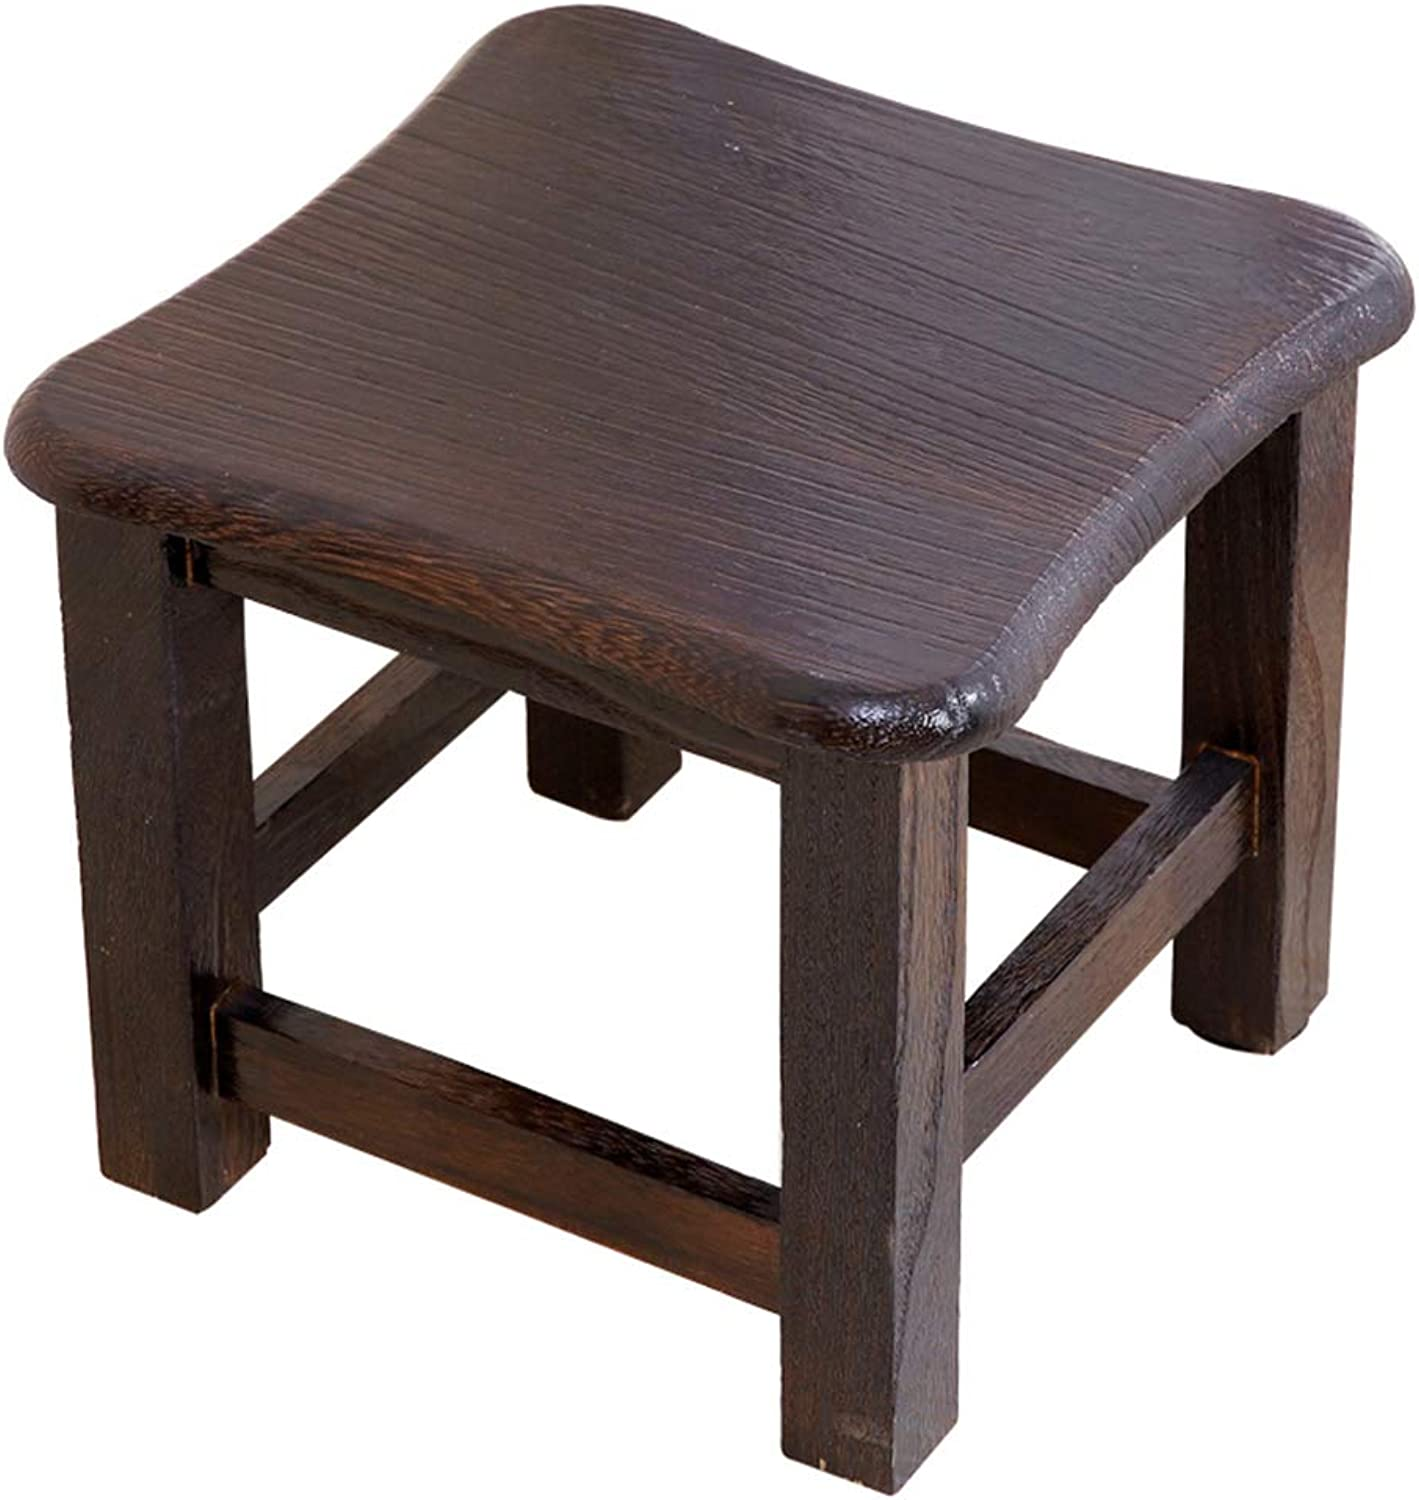 Kitchen Dinning Stool,Waterproof Step Stool,Wooden Legs,Stackable,29.5x29.5x25.5cm,A